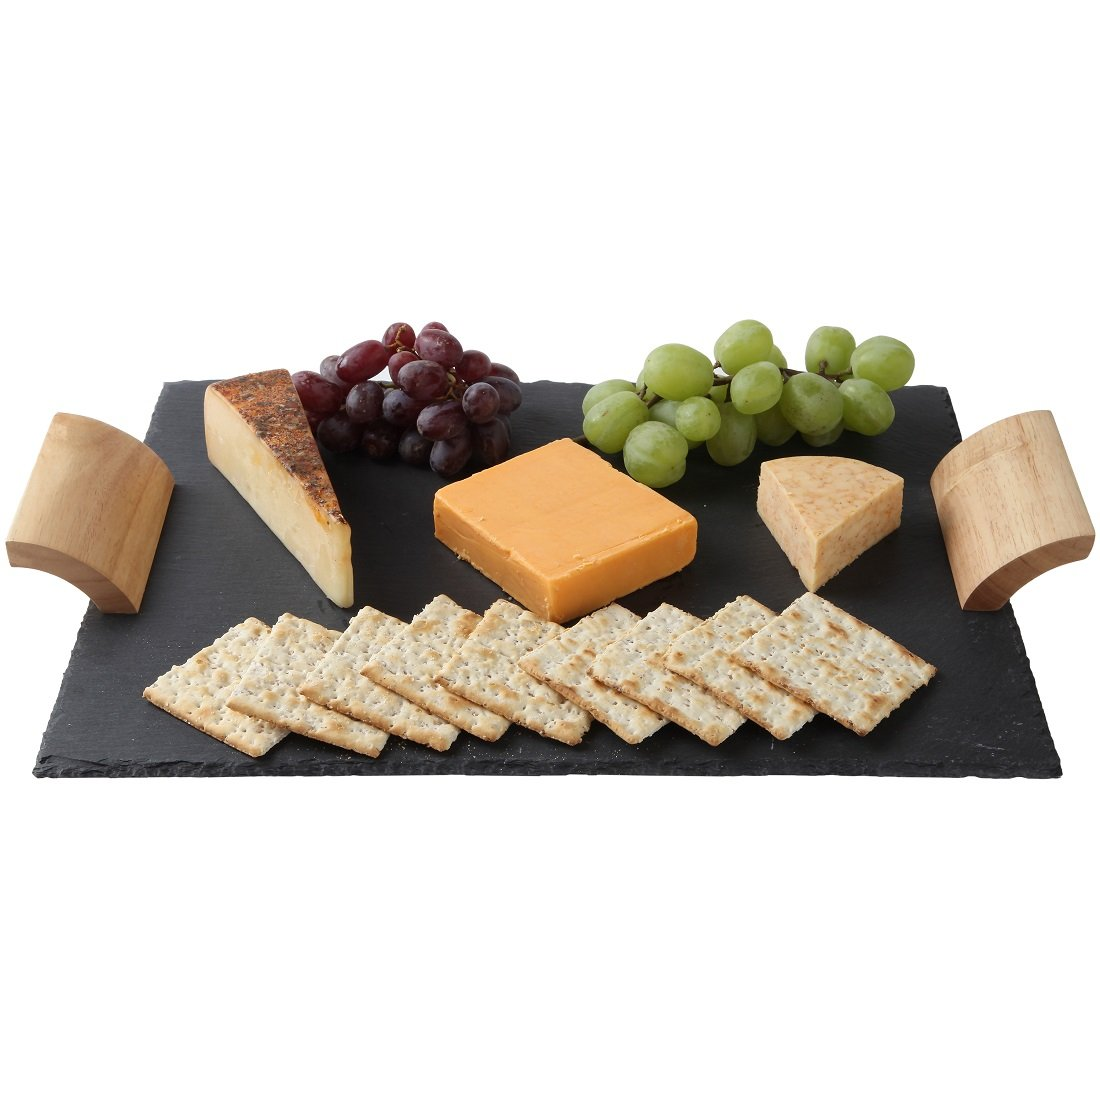 Lily's Home Rustic Slate Cheese Board with Wooden Handles and Chalk, Cheese Tray, 16 X 12 Inch. by Lily's (Image #1)